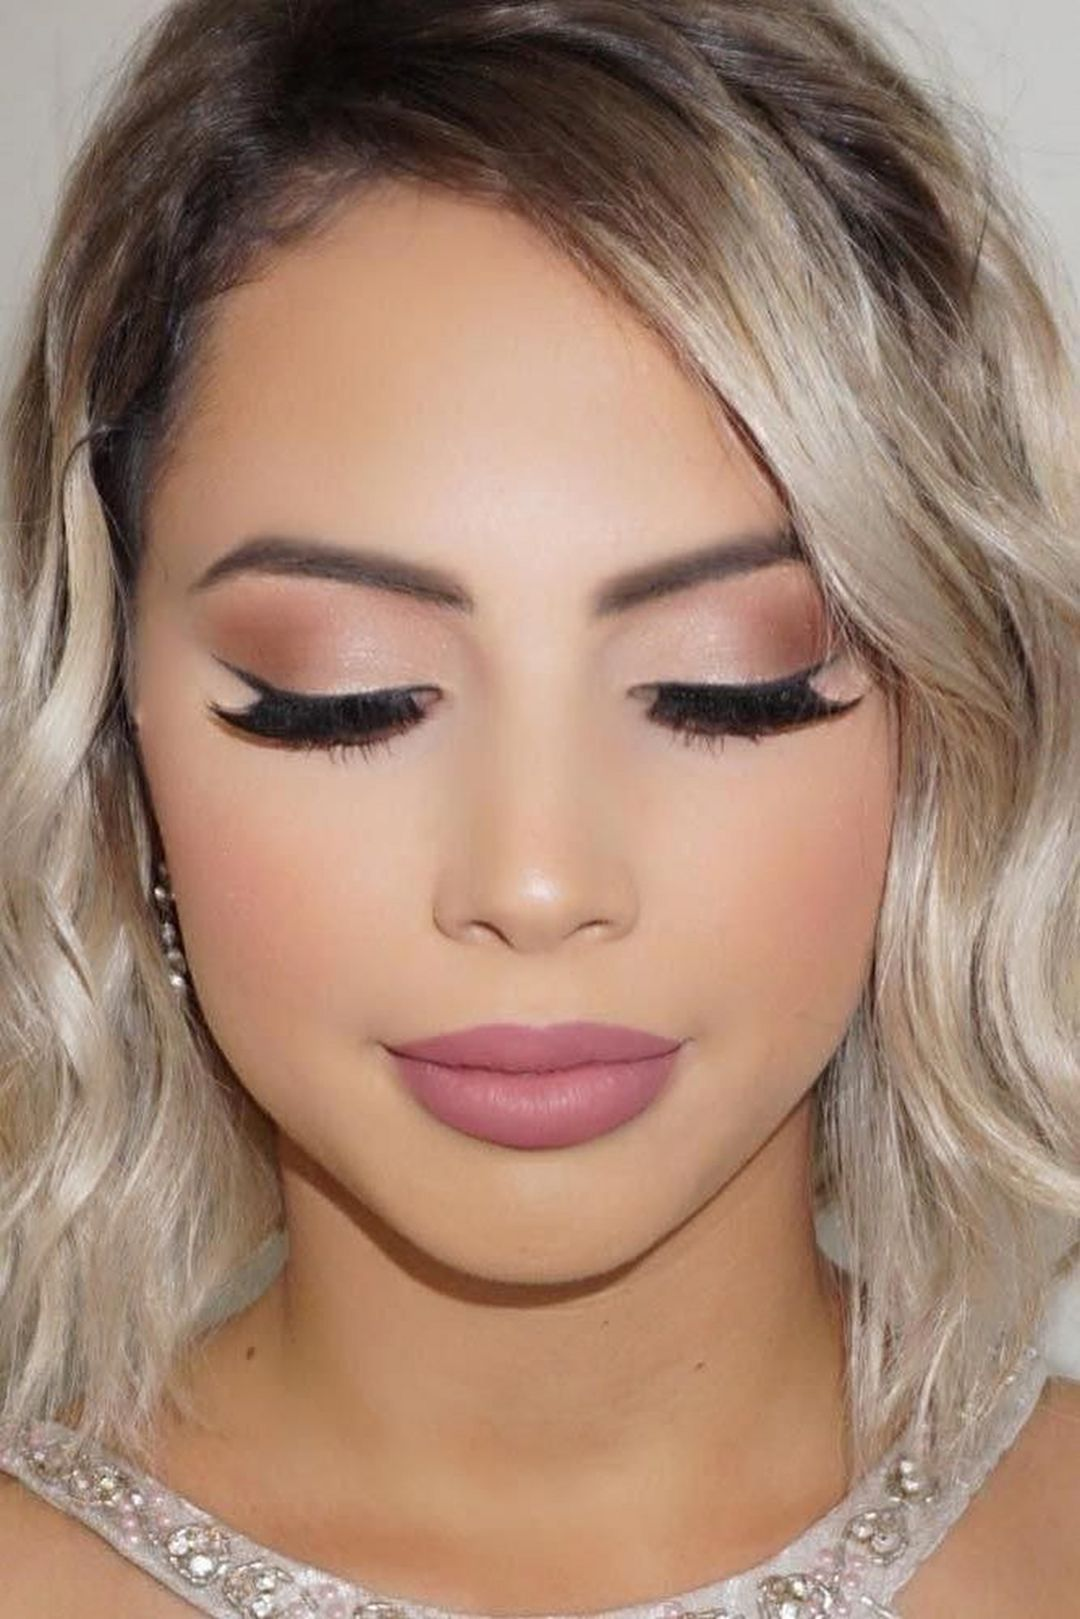 15 simple and memorable makeup ideas you can rely on for